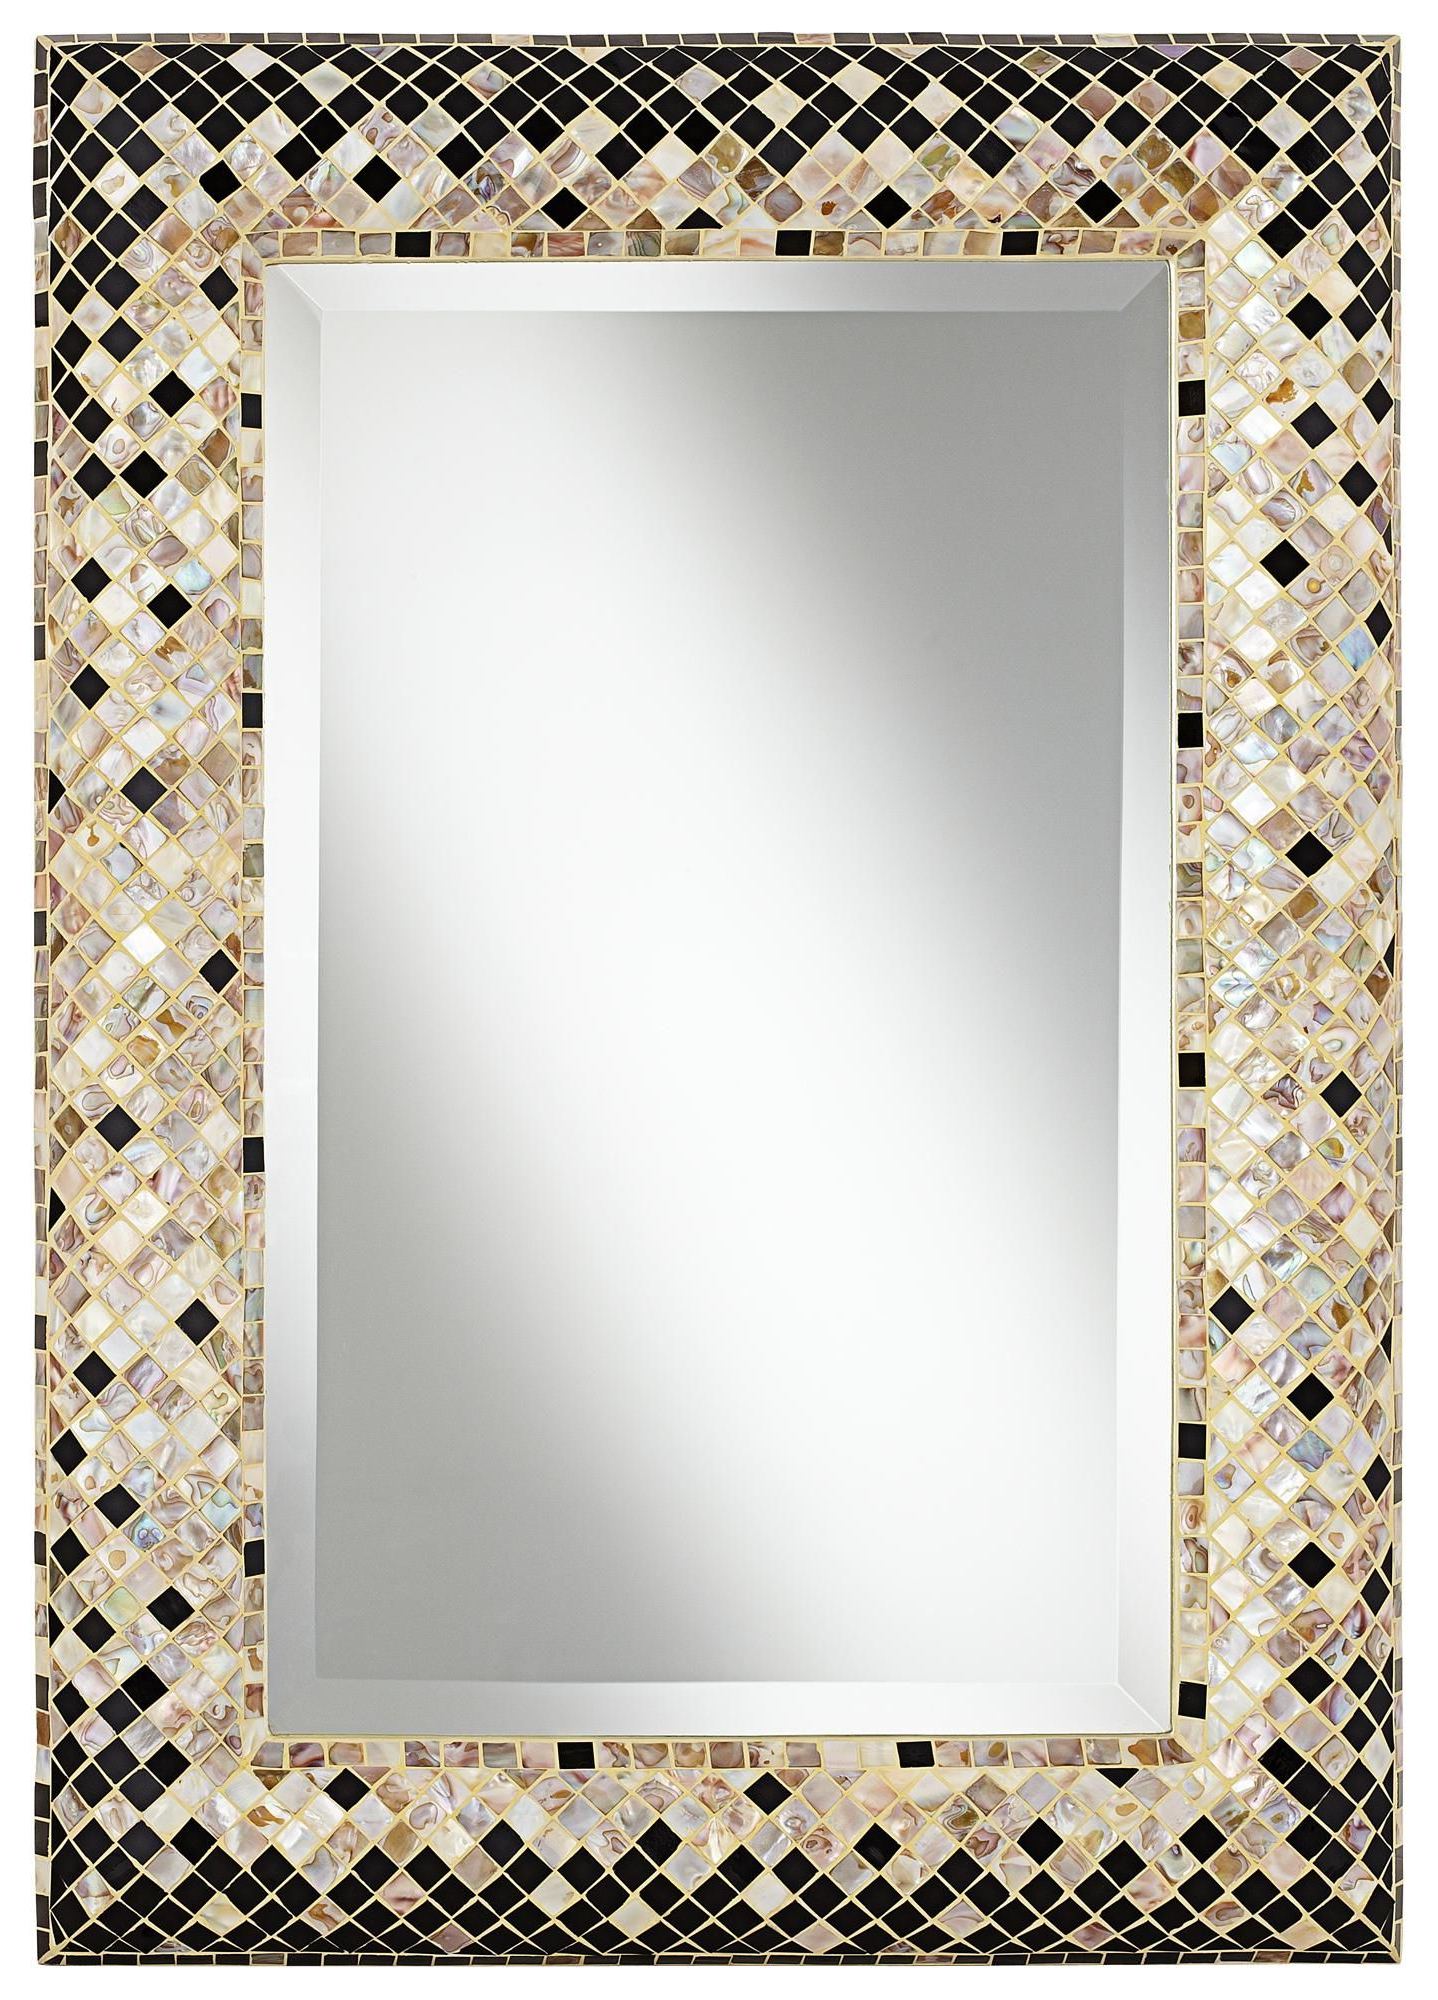 "Mosaic Wall Mirrors Inside Most Recently Released Checkered Sea Shell 33"" Mosaic Wall Mirror (View 20 of 20)"